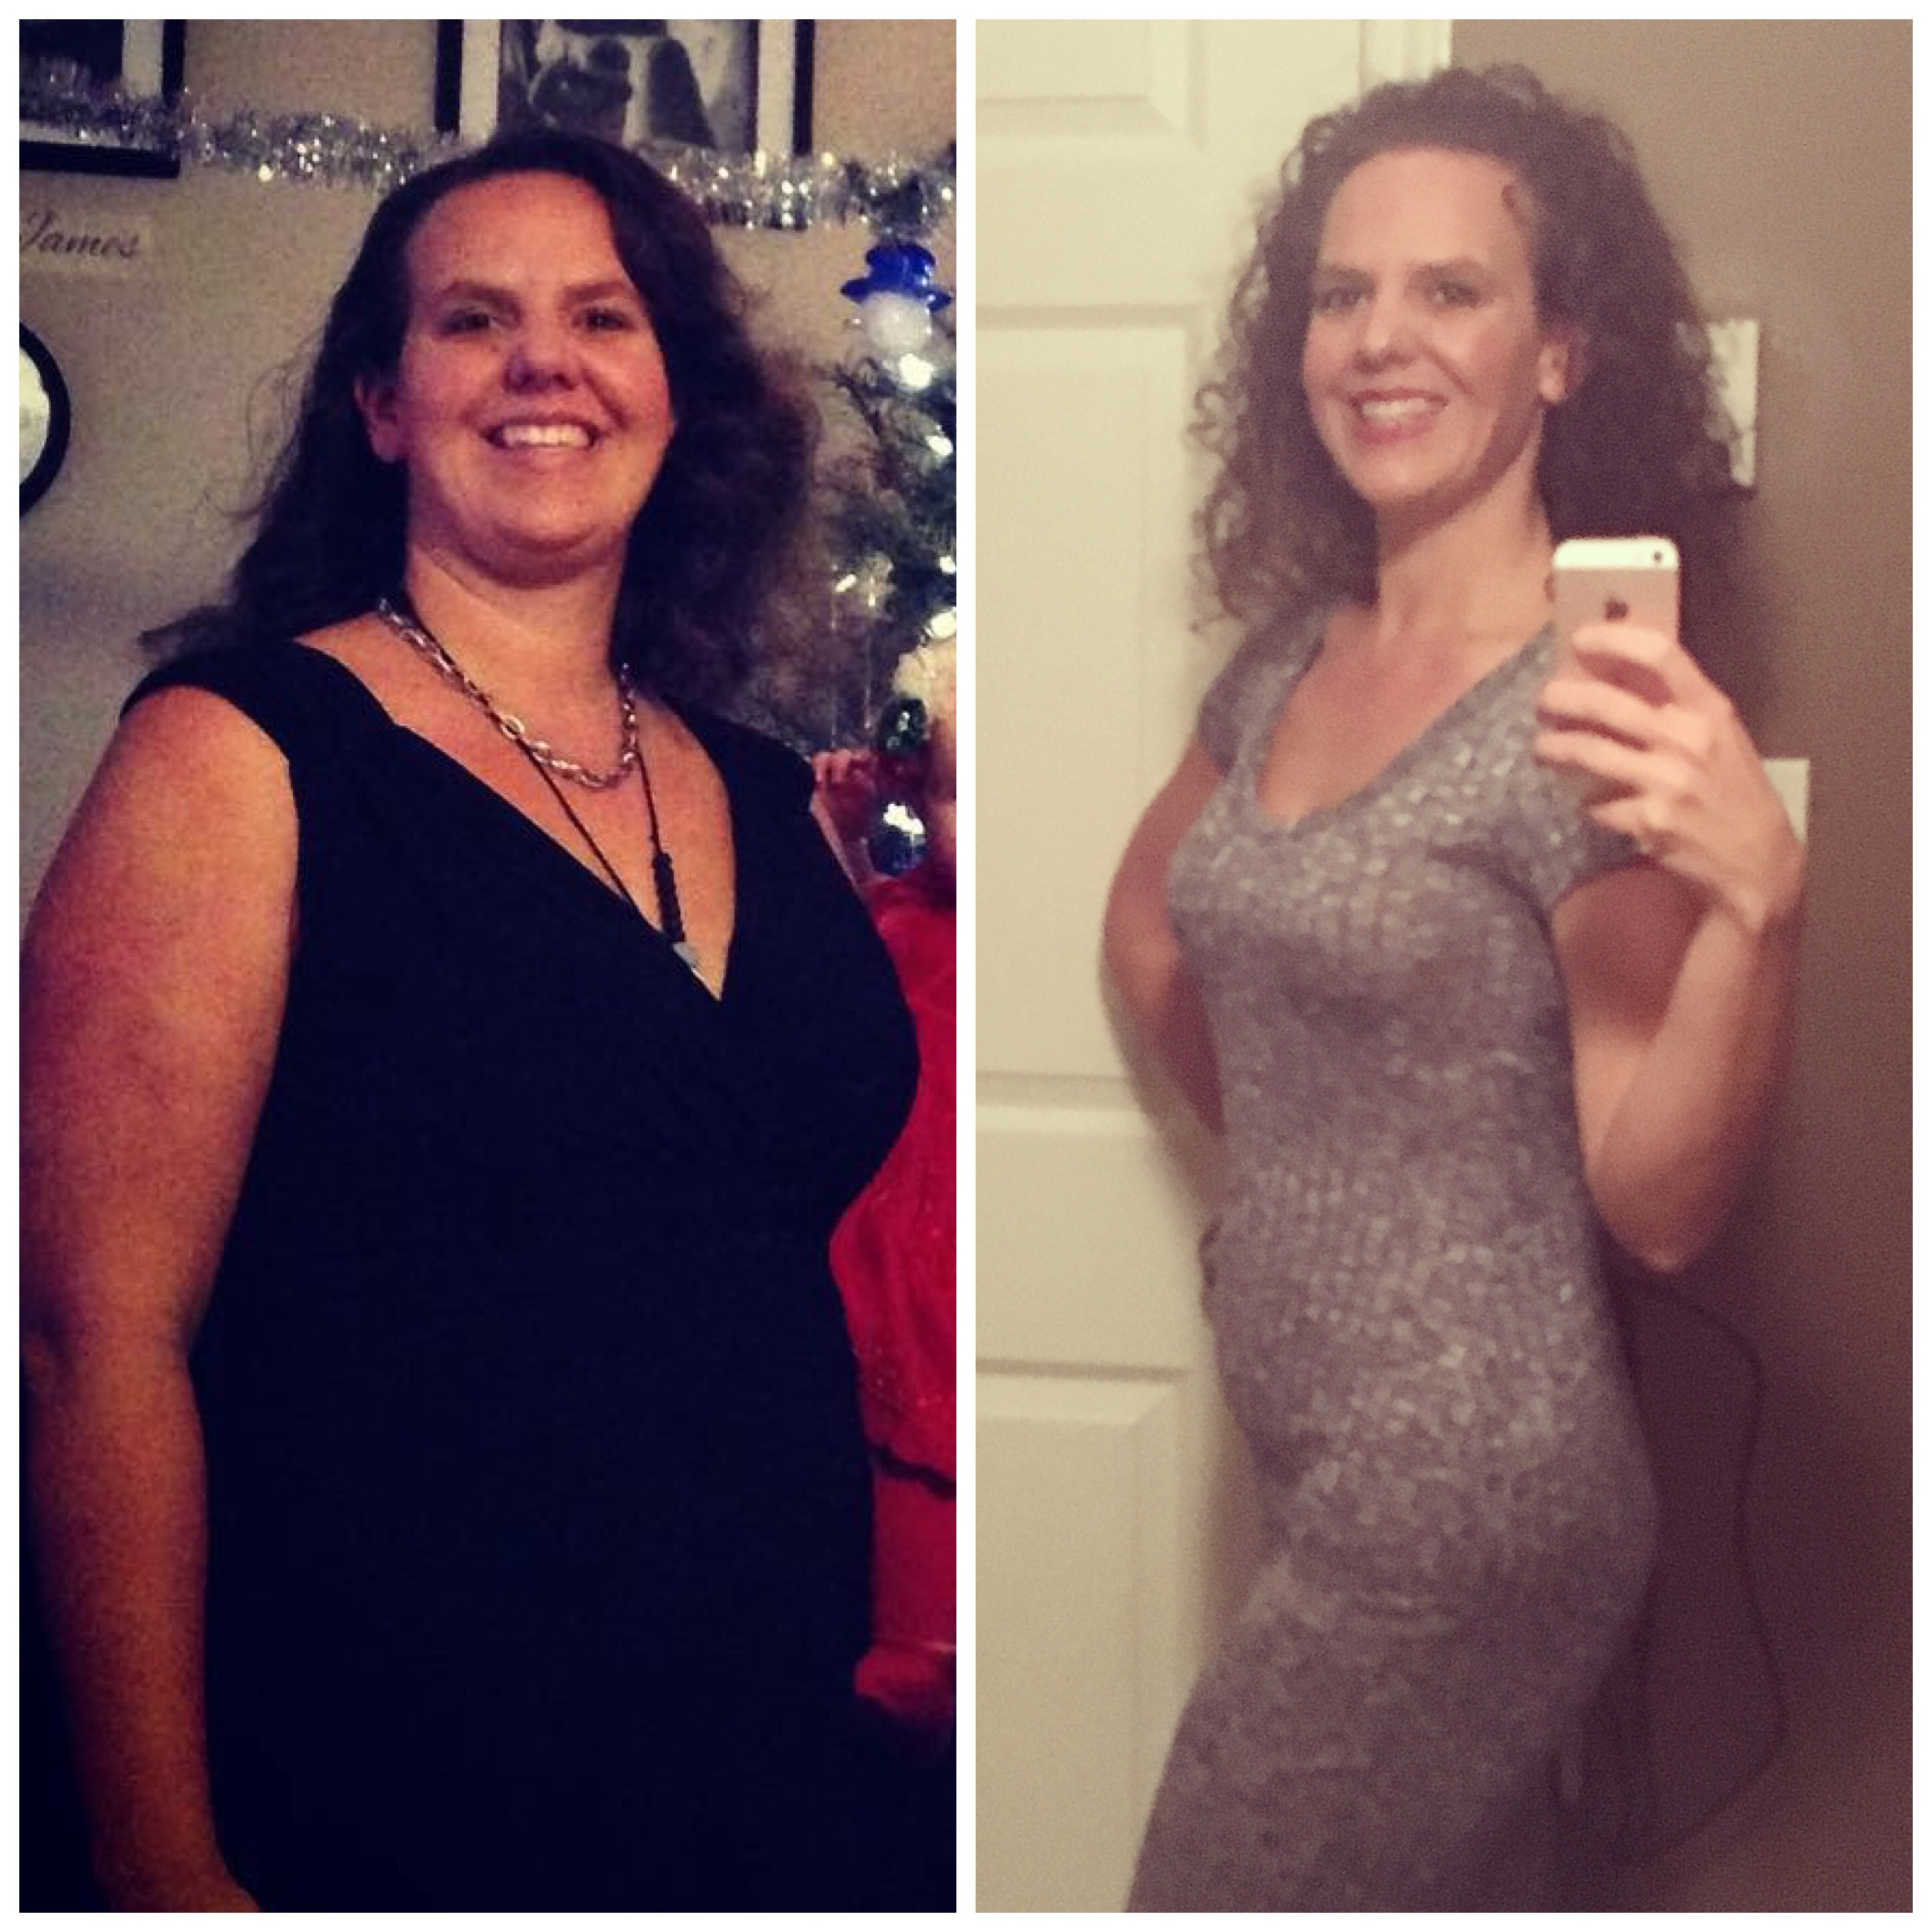 Angela lost 70 pounds! See my before and after weight loss pictures, and read amazing weight loss success stories from real women and their best weight loss diet plans and programs. Motivation to lose weight with walking and inspiration from before and after weightloss pics and photos.